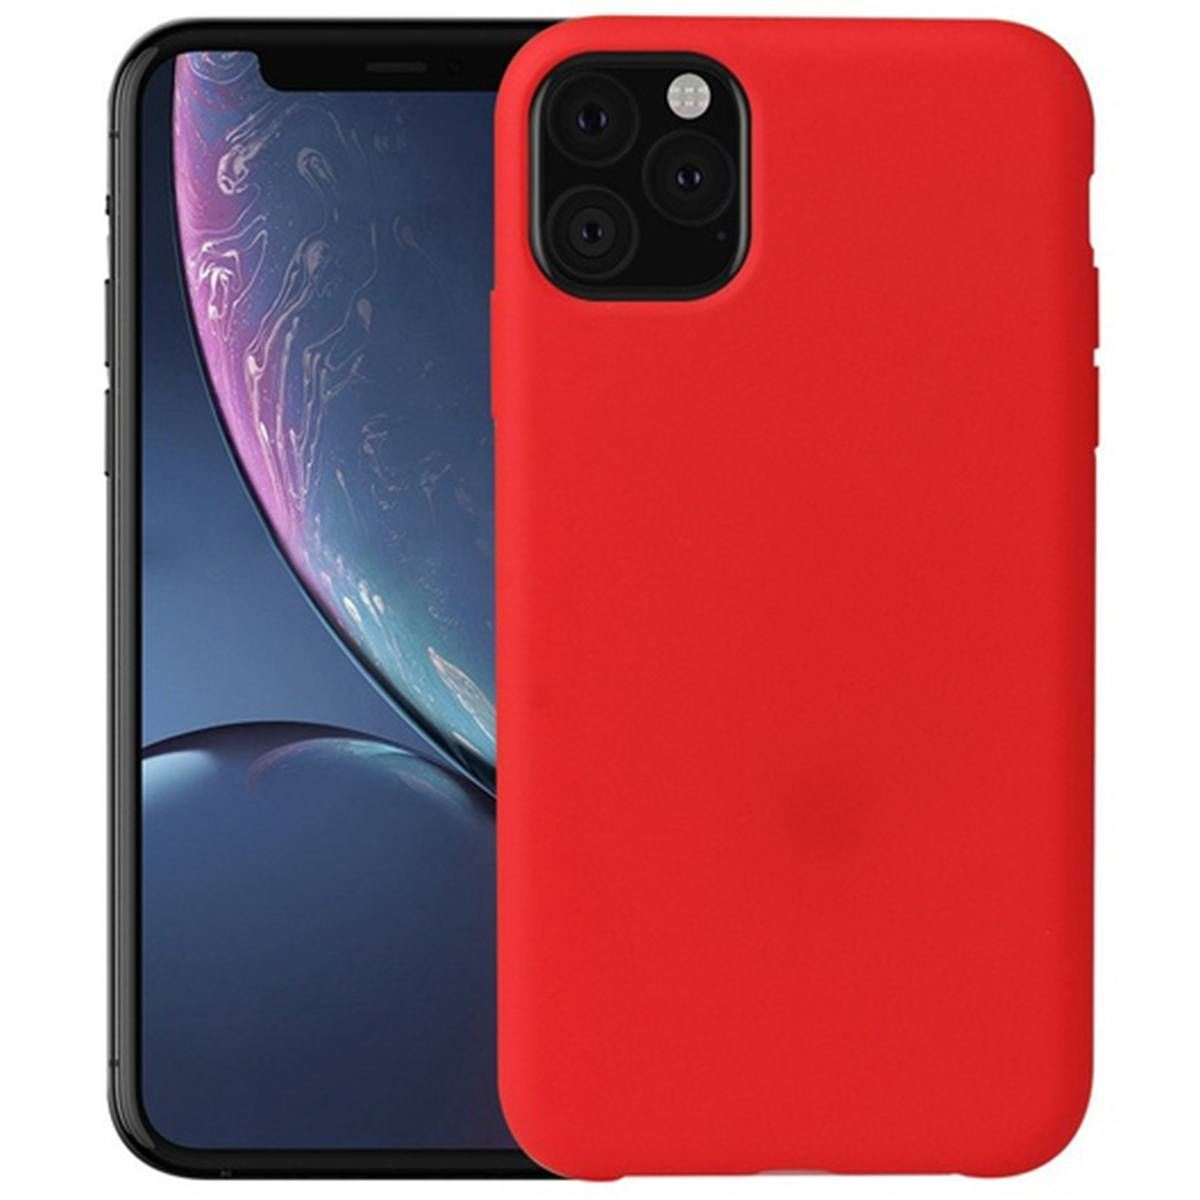 iPhone 11 Case Silicone Back Soft Rubber Cover - Red